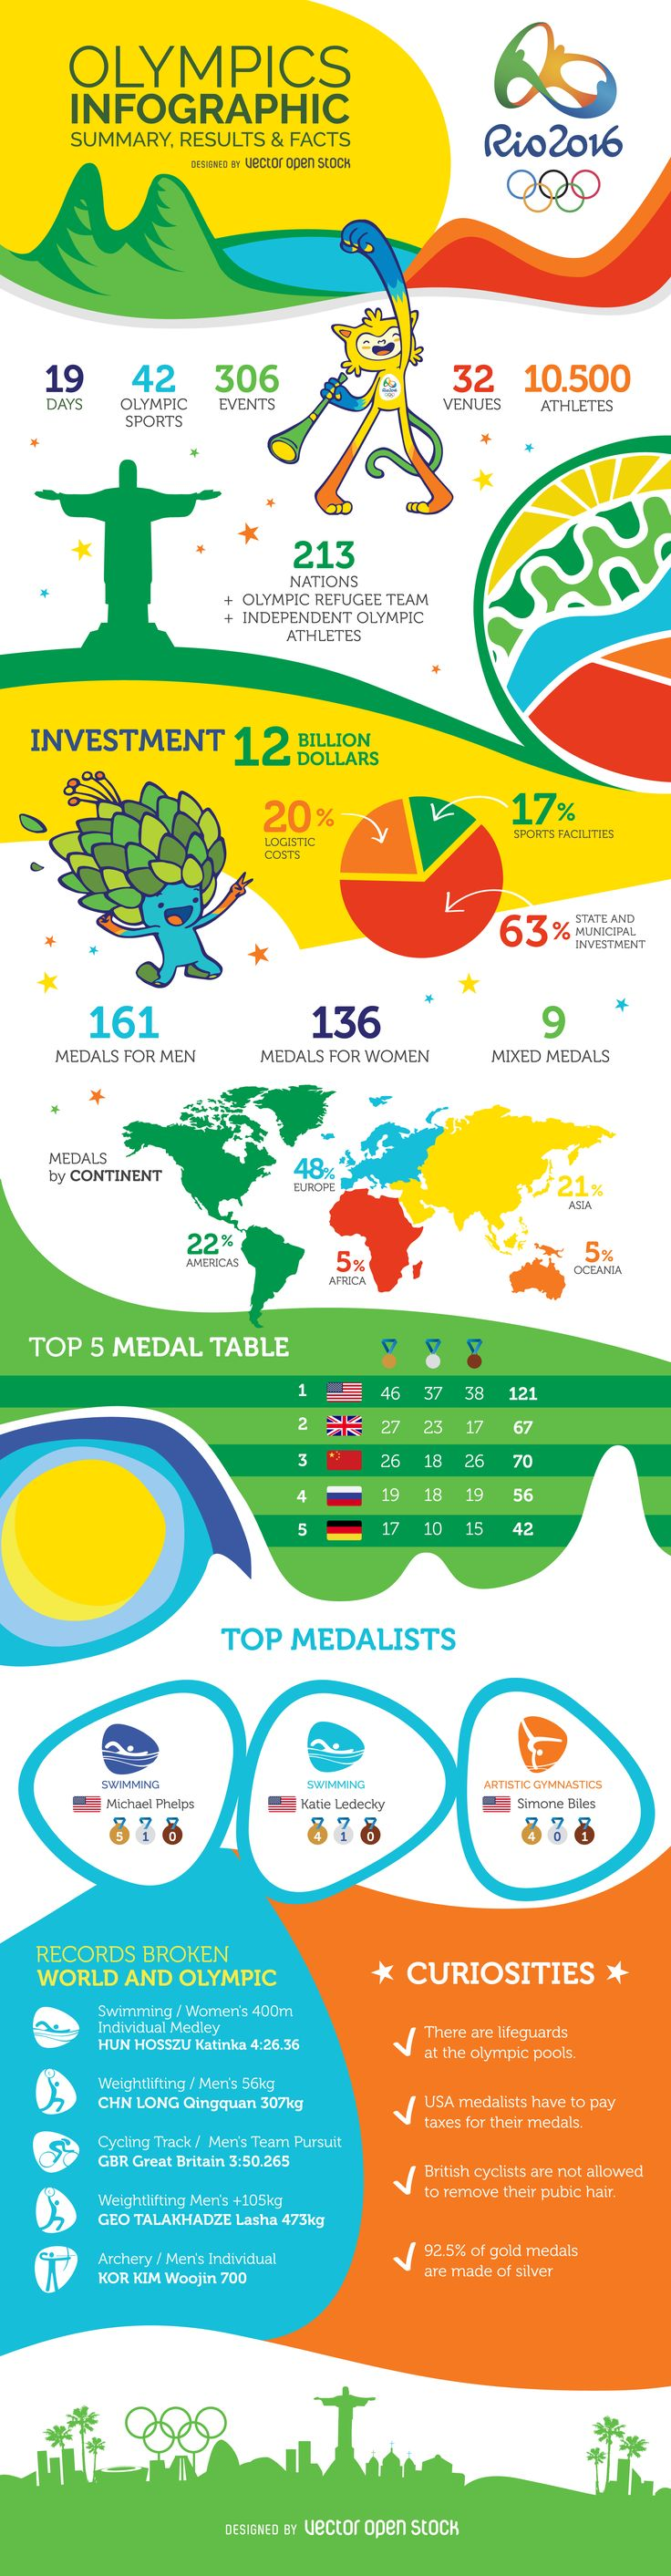 Rio 2016 infographic with the final results, last minute news, weird facts, and broken records from the 2016 Olympic Games. Download vector graphic and spread the news! #Rio2016 #Olympics2016 #infographic